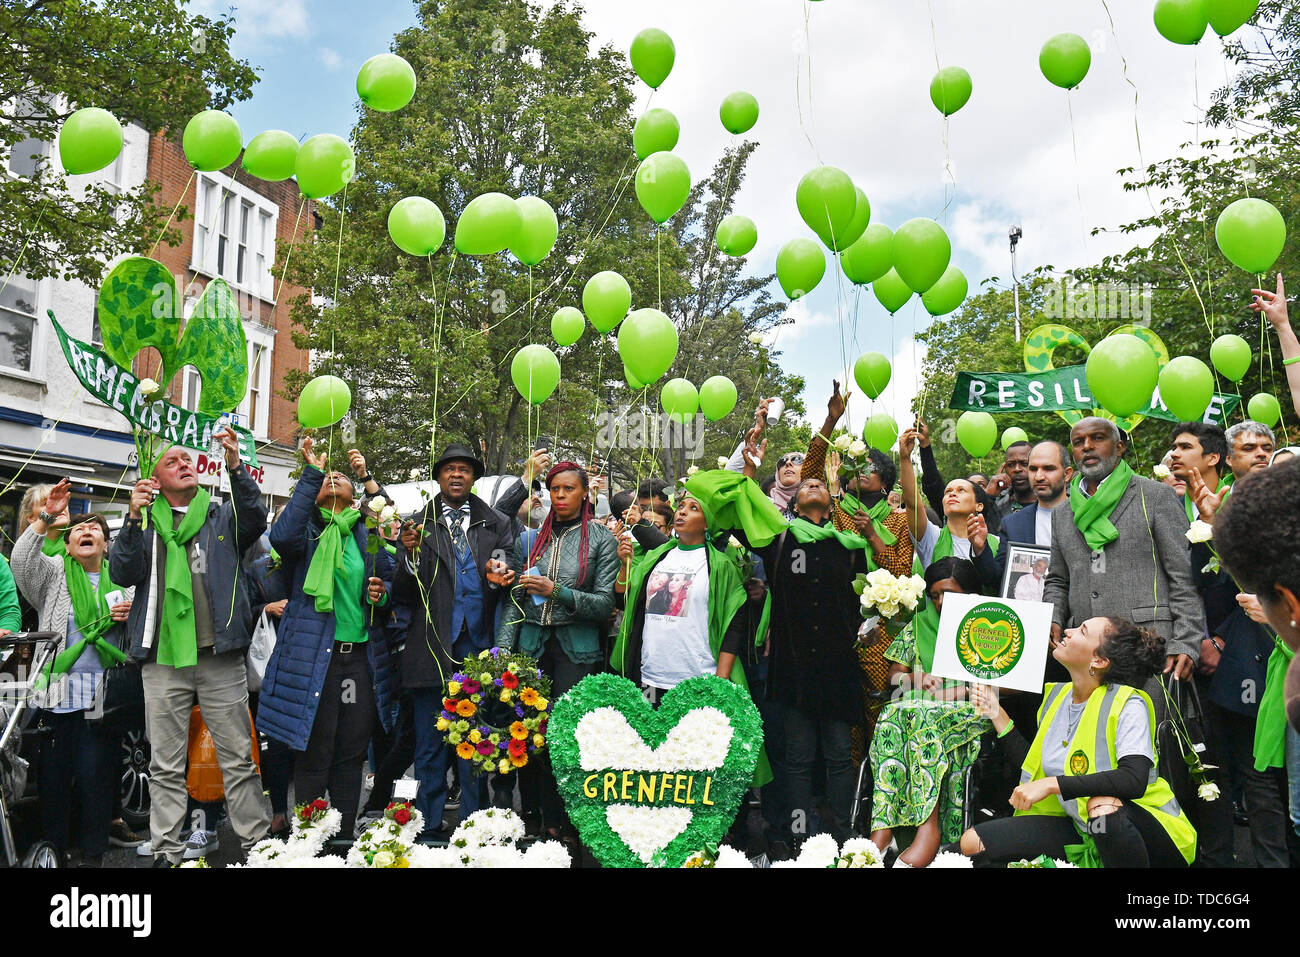 People gather as balloons are released outside St Helens church, London, following a service to mark the two-year anniversary of the Grenfell Tower block fire. - Stock Image